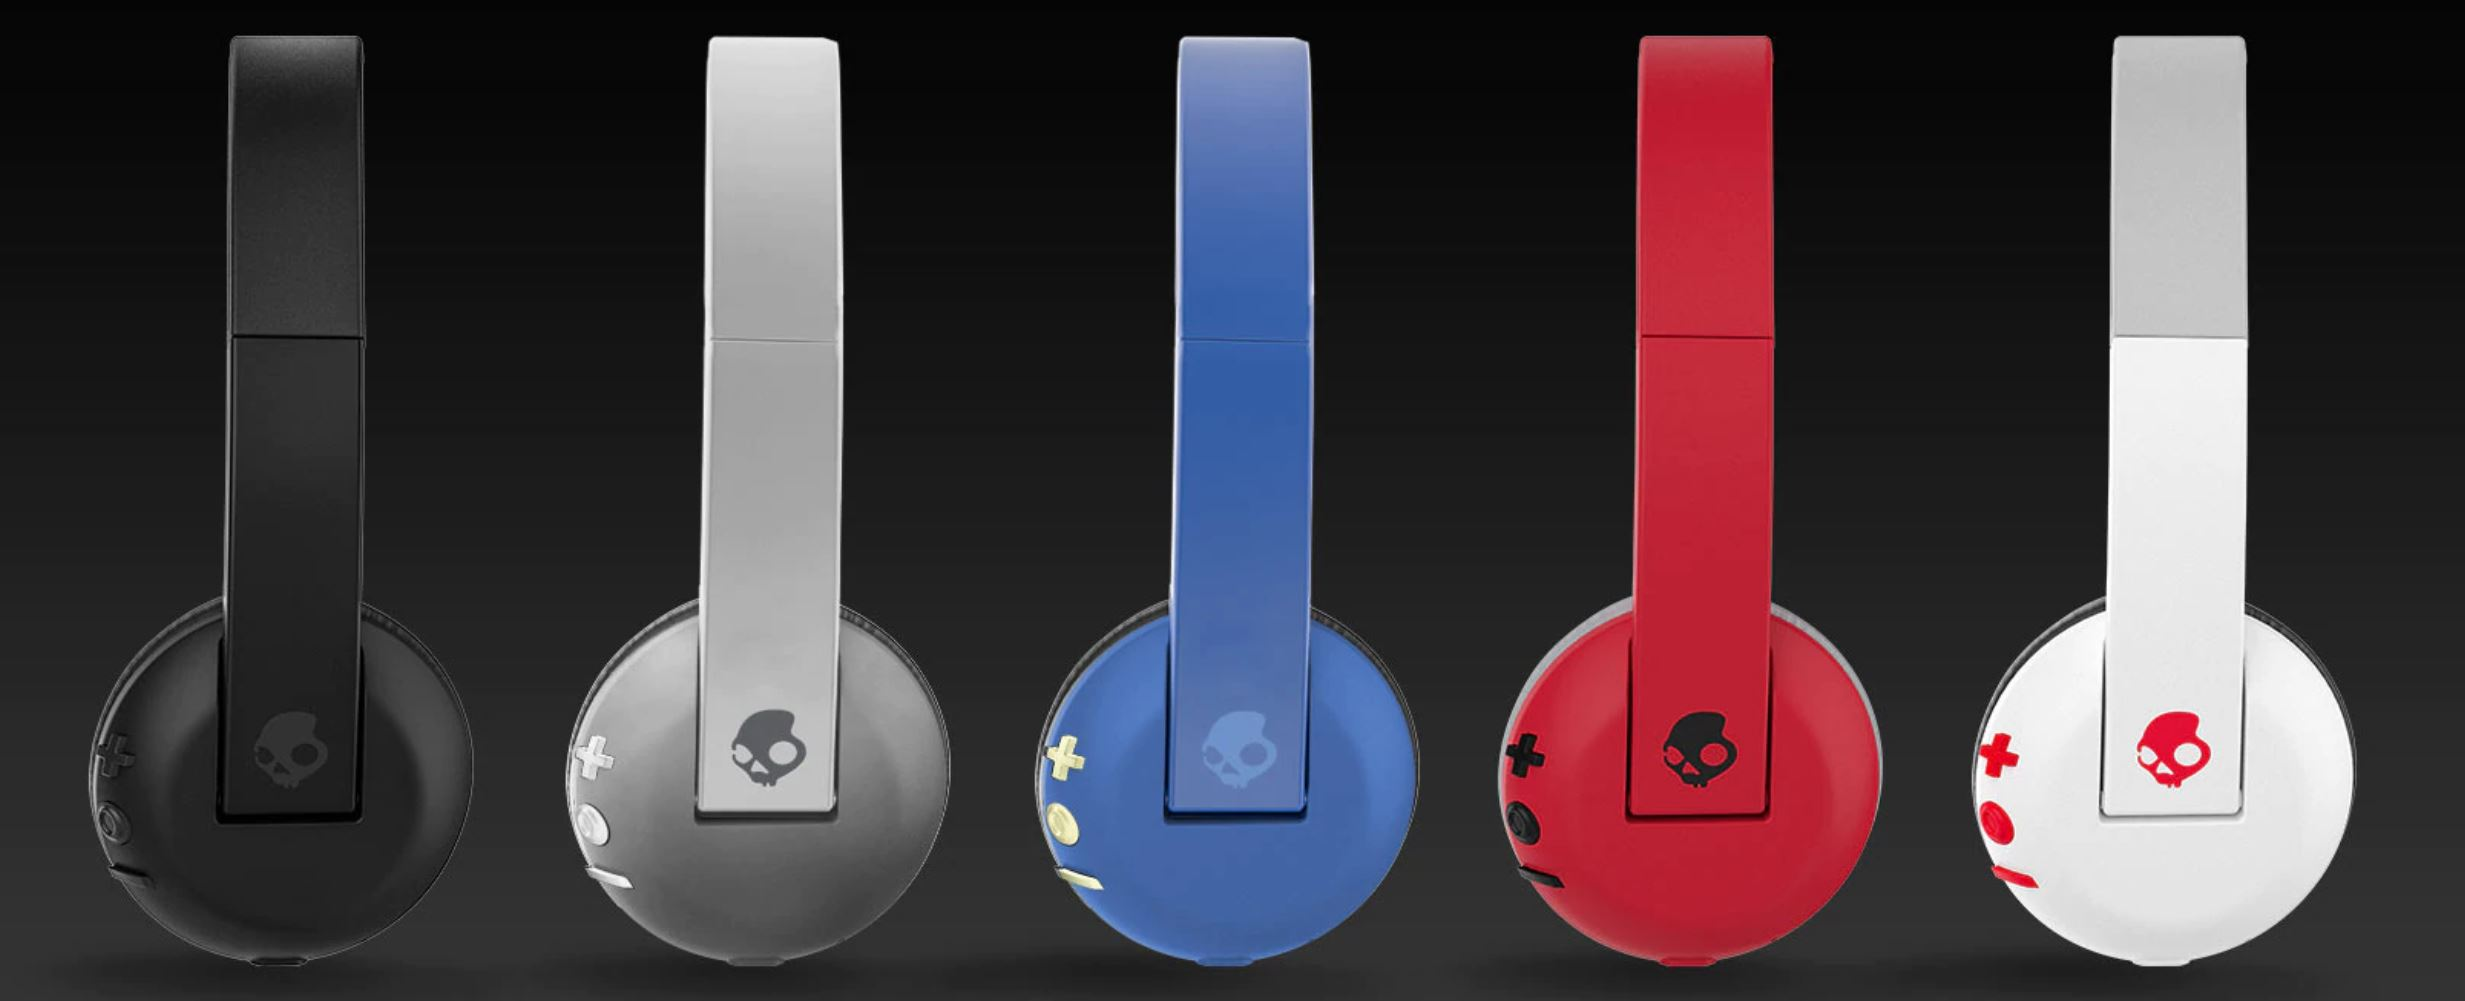 Skullcandy Uproar review - Bluetooth portable headphones in a range of colors.